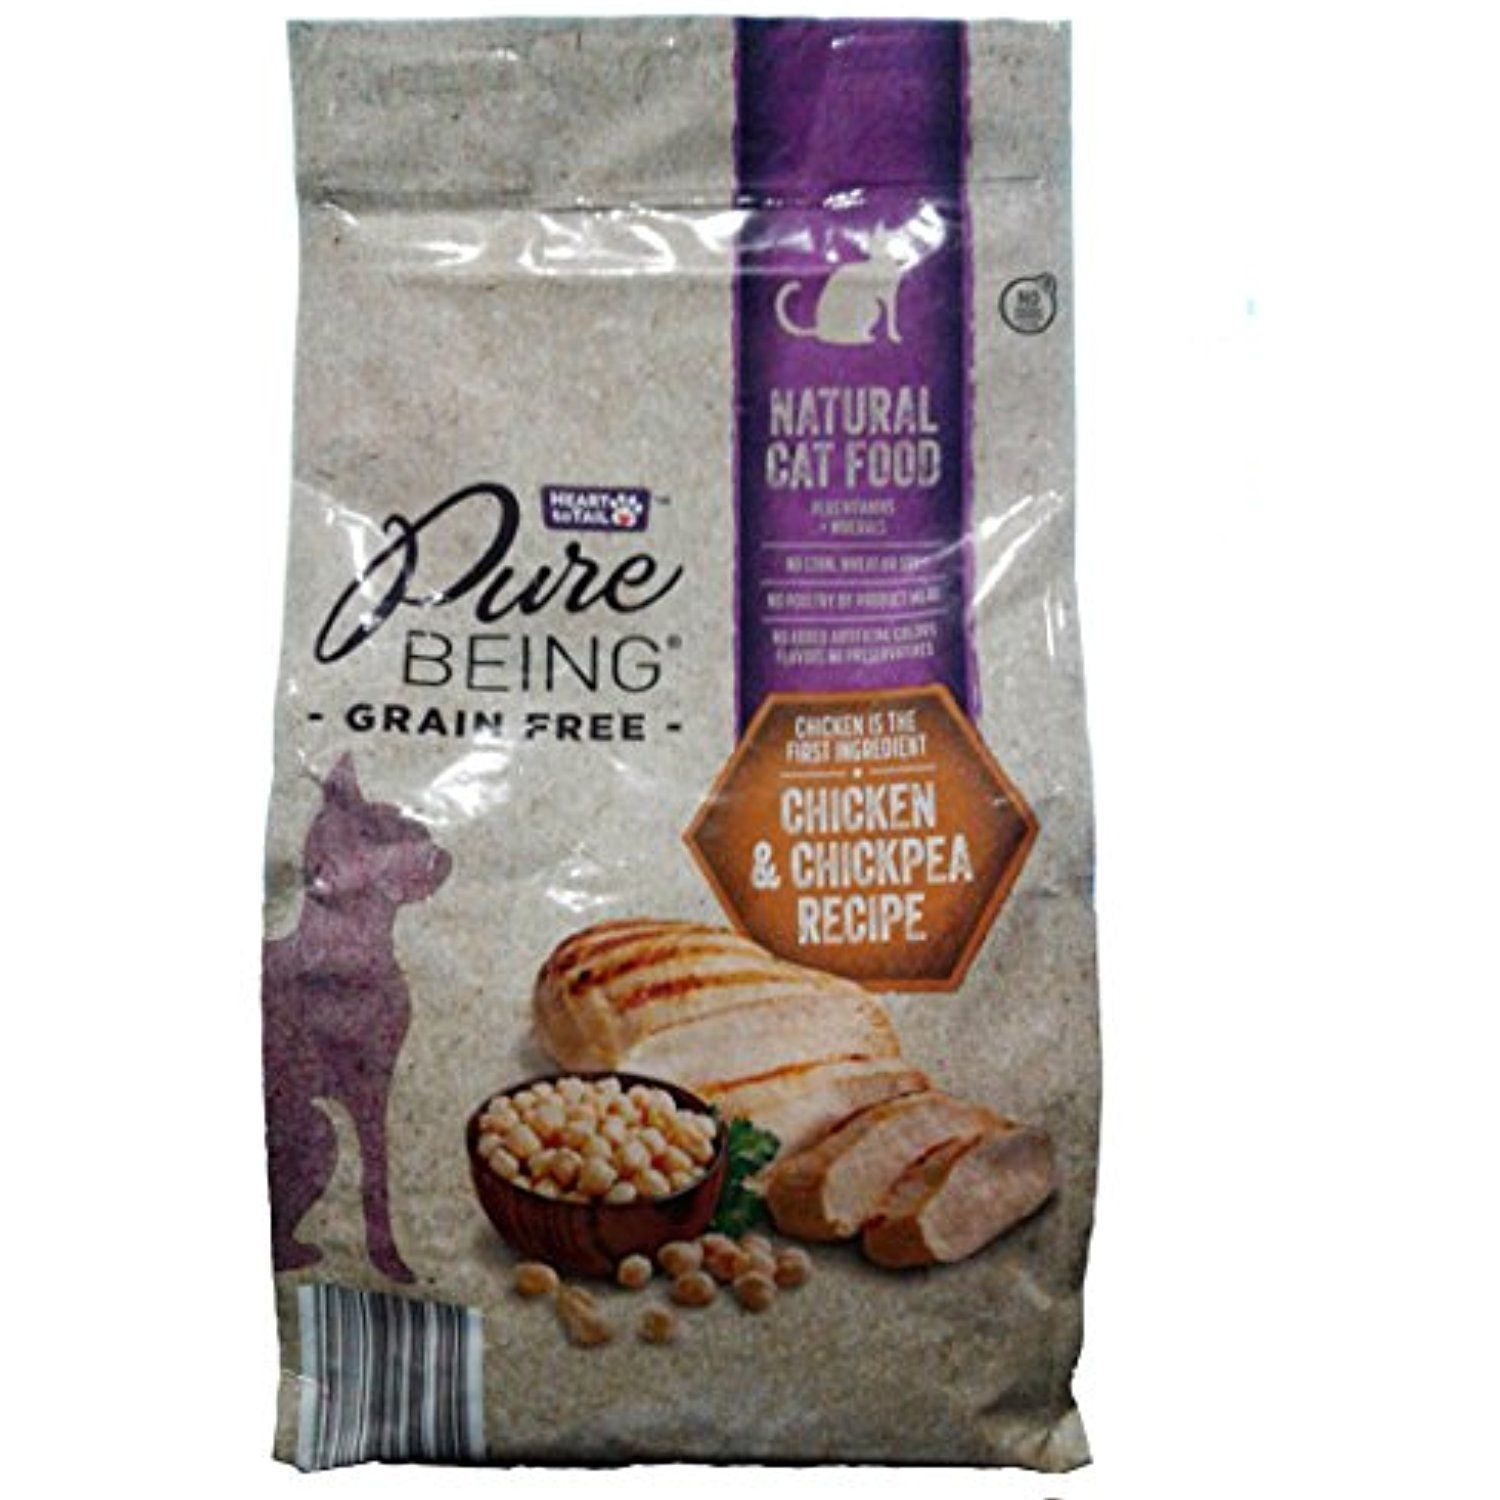 Pure Being Grain Free Natural Cat Food Chicken Cats